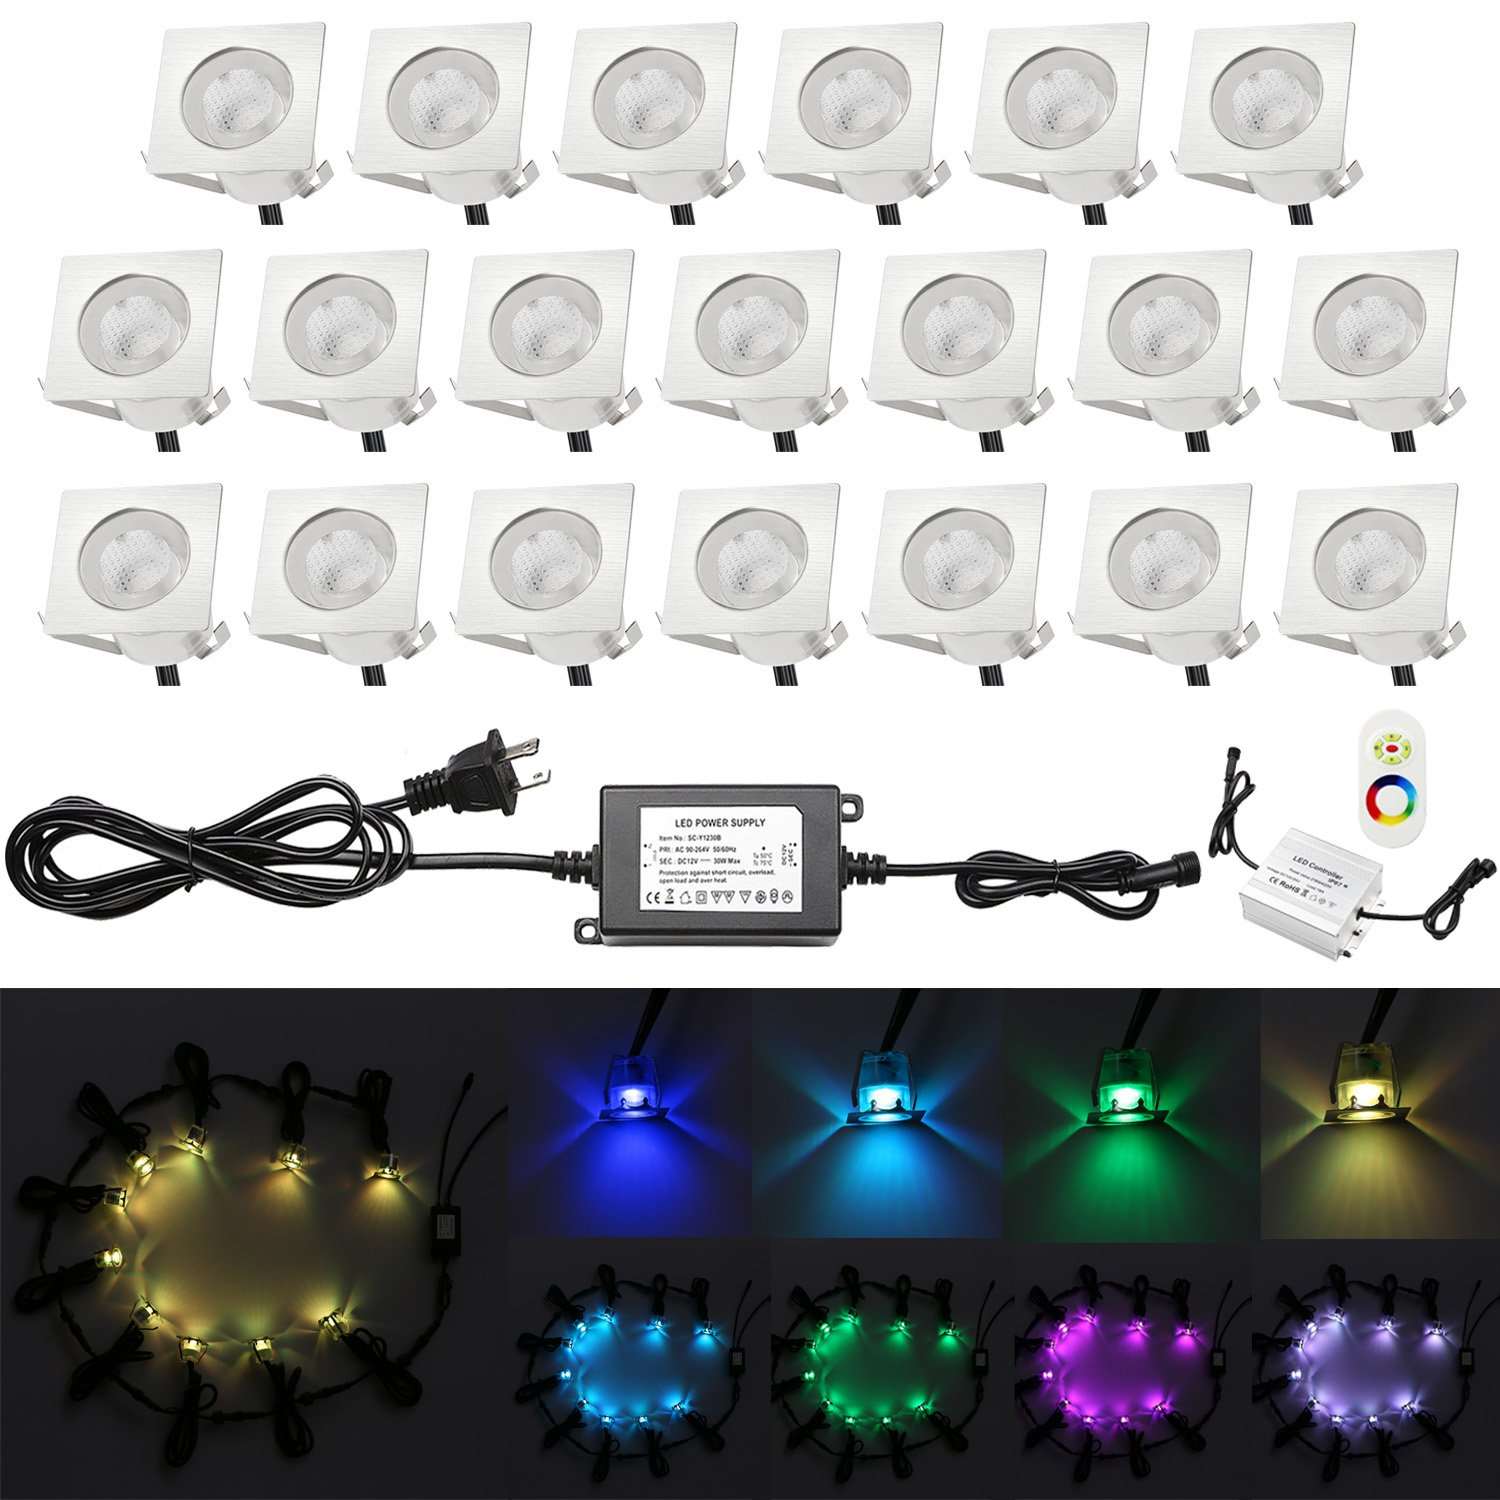 Low Voltage Deck Lighting, QACA 20pcs 0.1W~0.3W Multi-Color RGB LED Deck Lights Kit 1-3/5'' Stainless Steel Recessed Wood Outdoor Yard Garden Decoration Lamp Patio Stairs Landscape Step Lighting by QACA